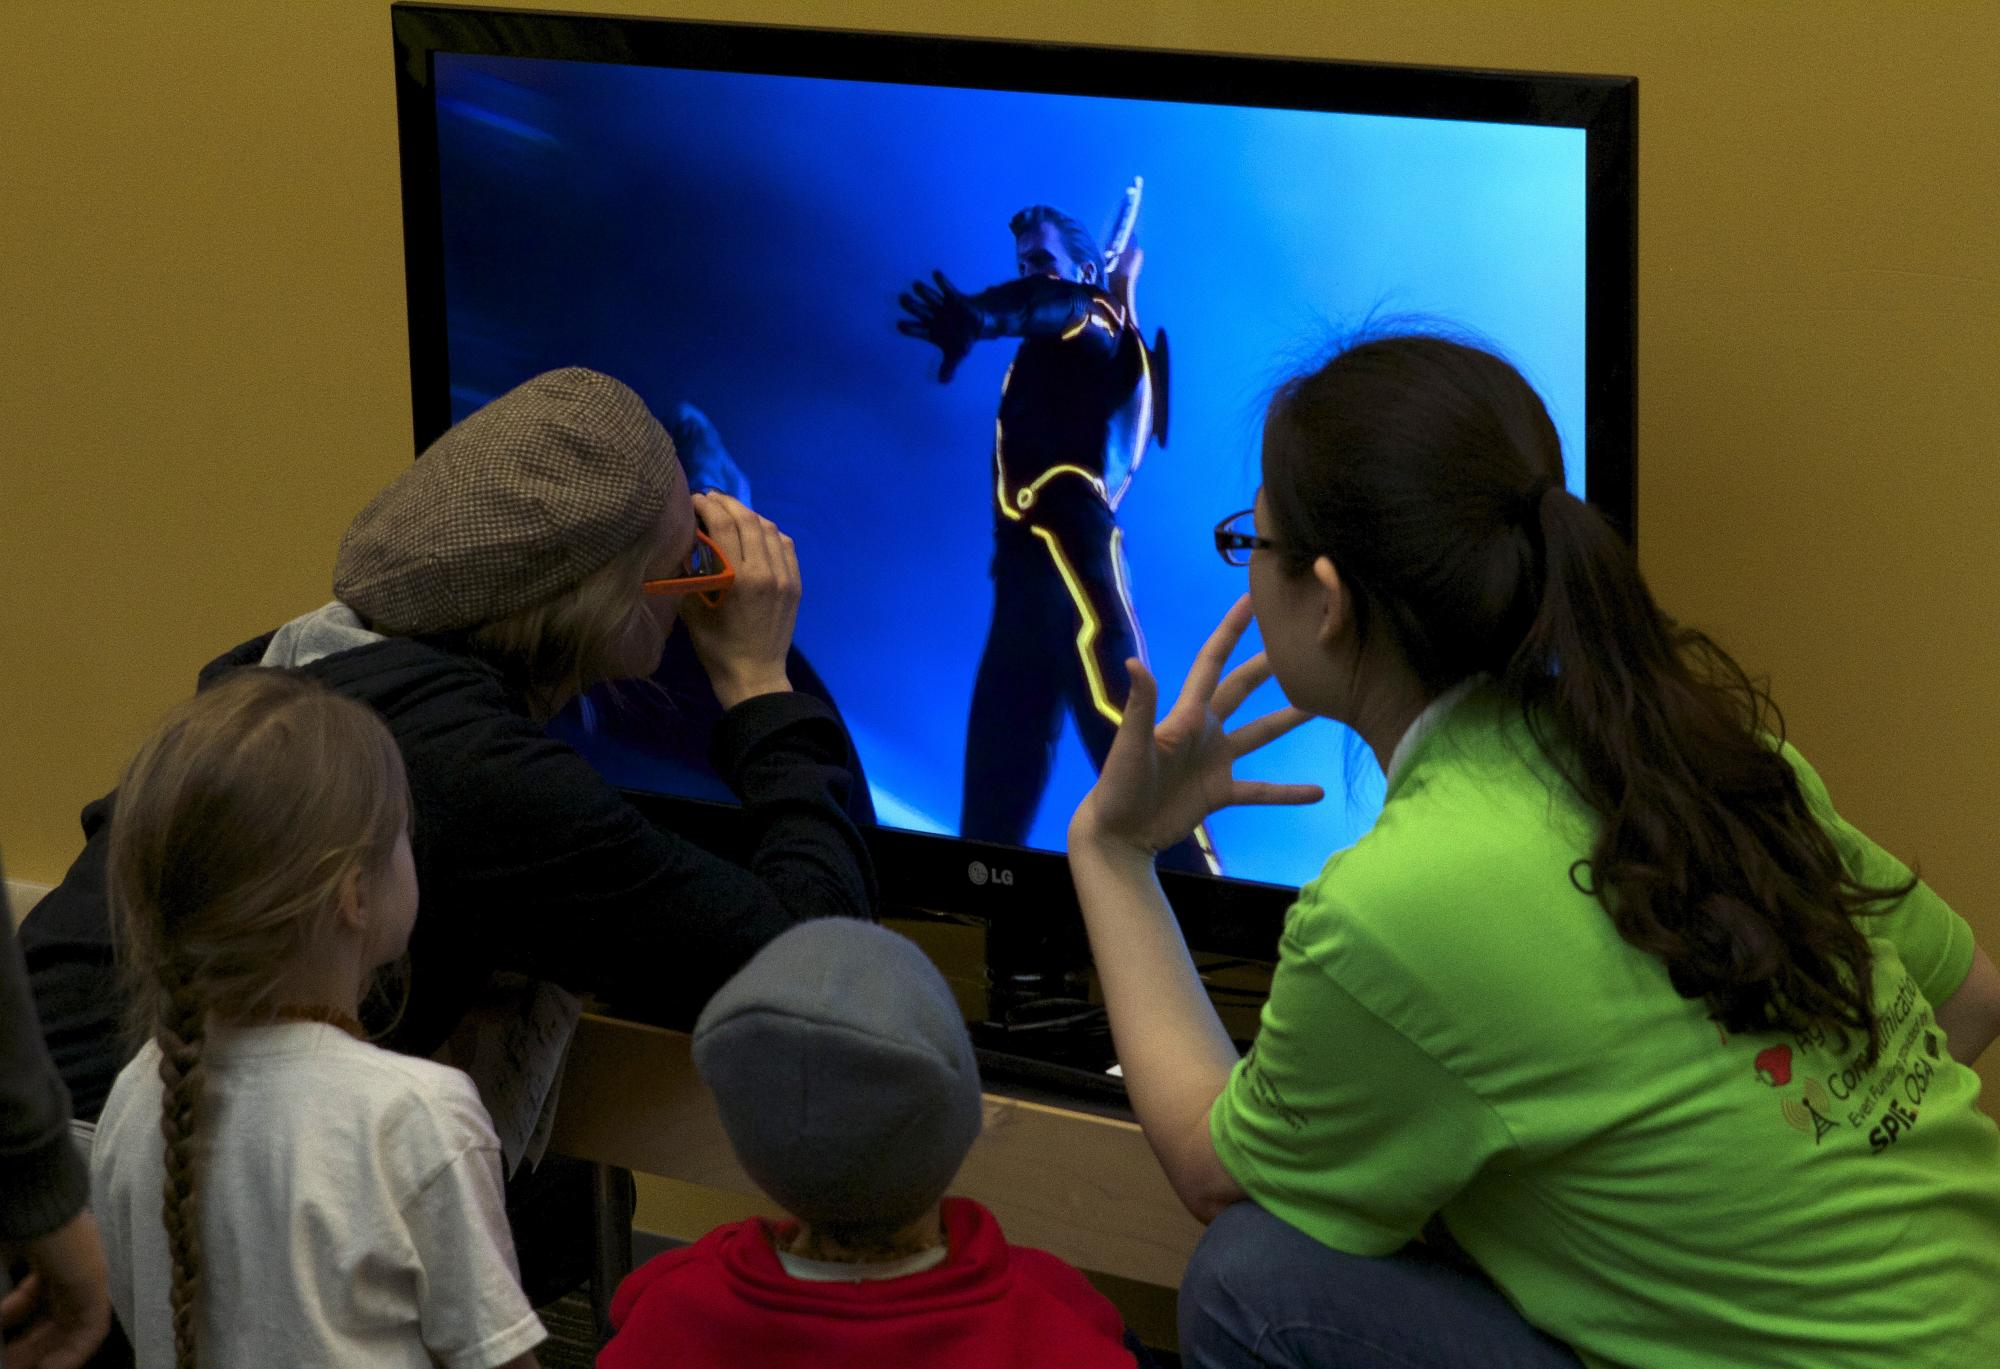 Visitors at the event explore 3-D television.